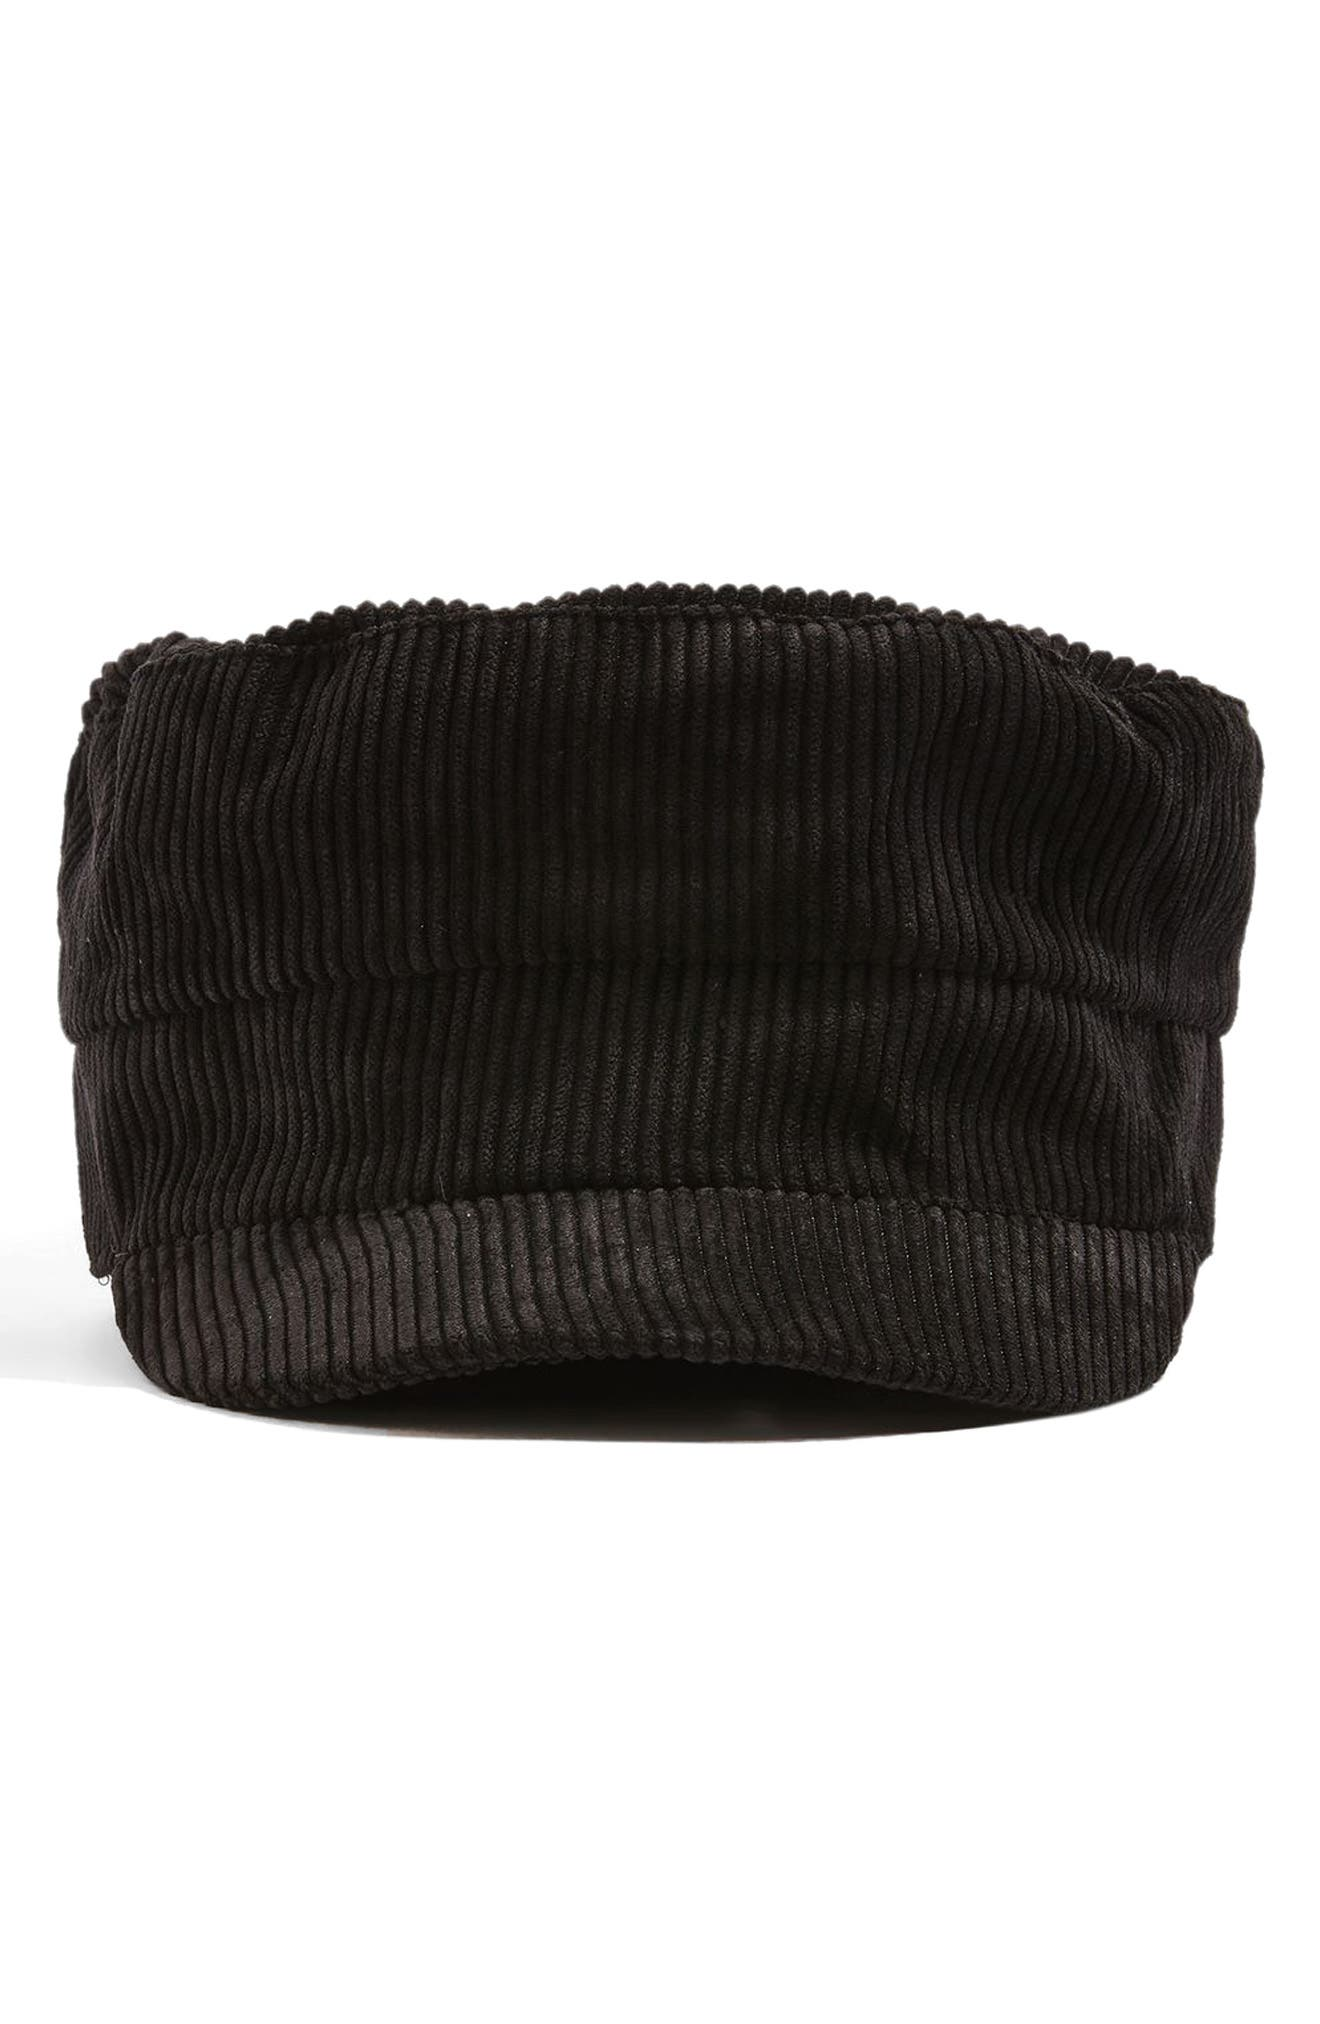 Corduroy Baker Boy Hat,                         Main,                         color, Black